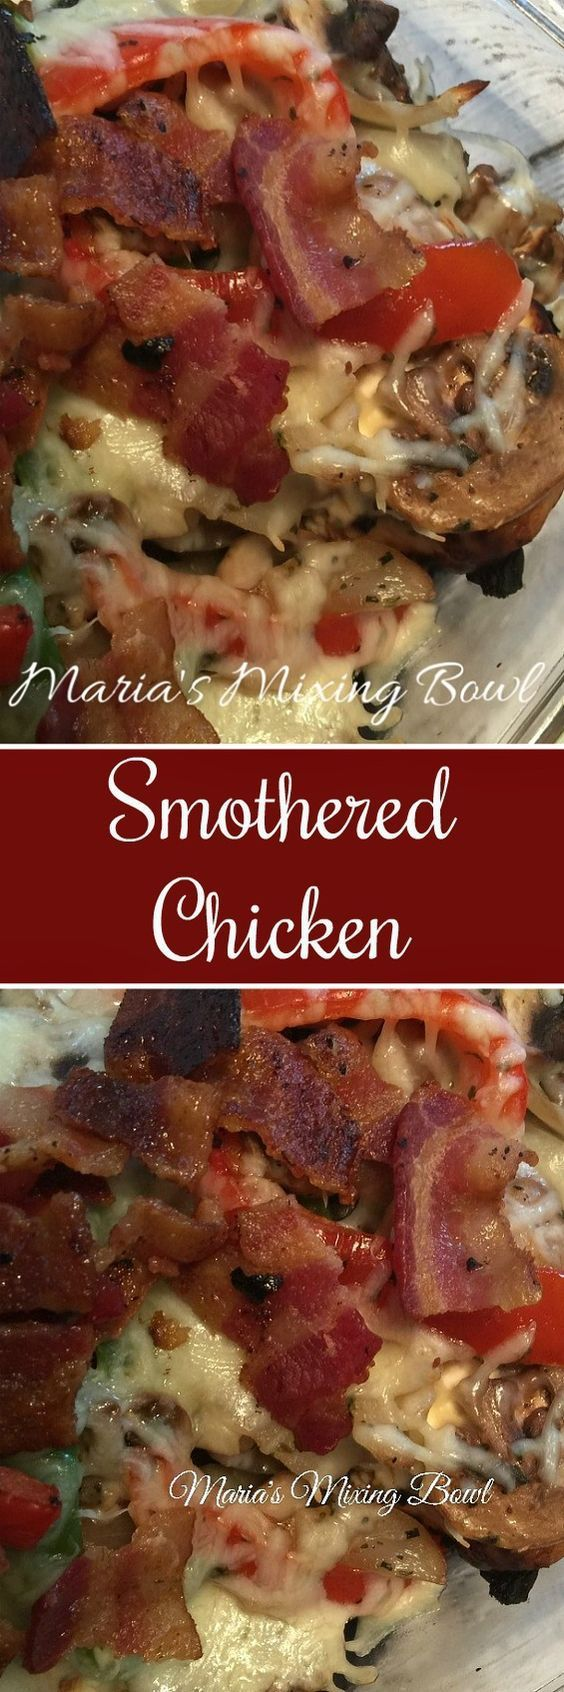 Baked Smothered Chicken is an incredibly easy and delicious one-pan, baked chicken dinner recipe!   Just the words smothered make me drool!! I love anything smothered . I mean lets face it. If its smothered in something good then it will be even better than if it wasn't smothered right?!   So IView Post